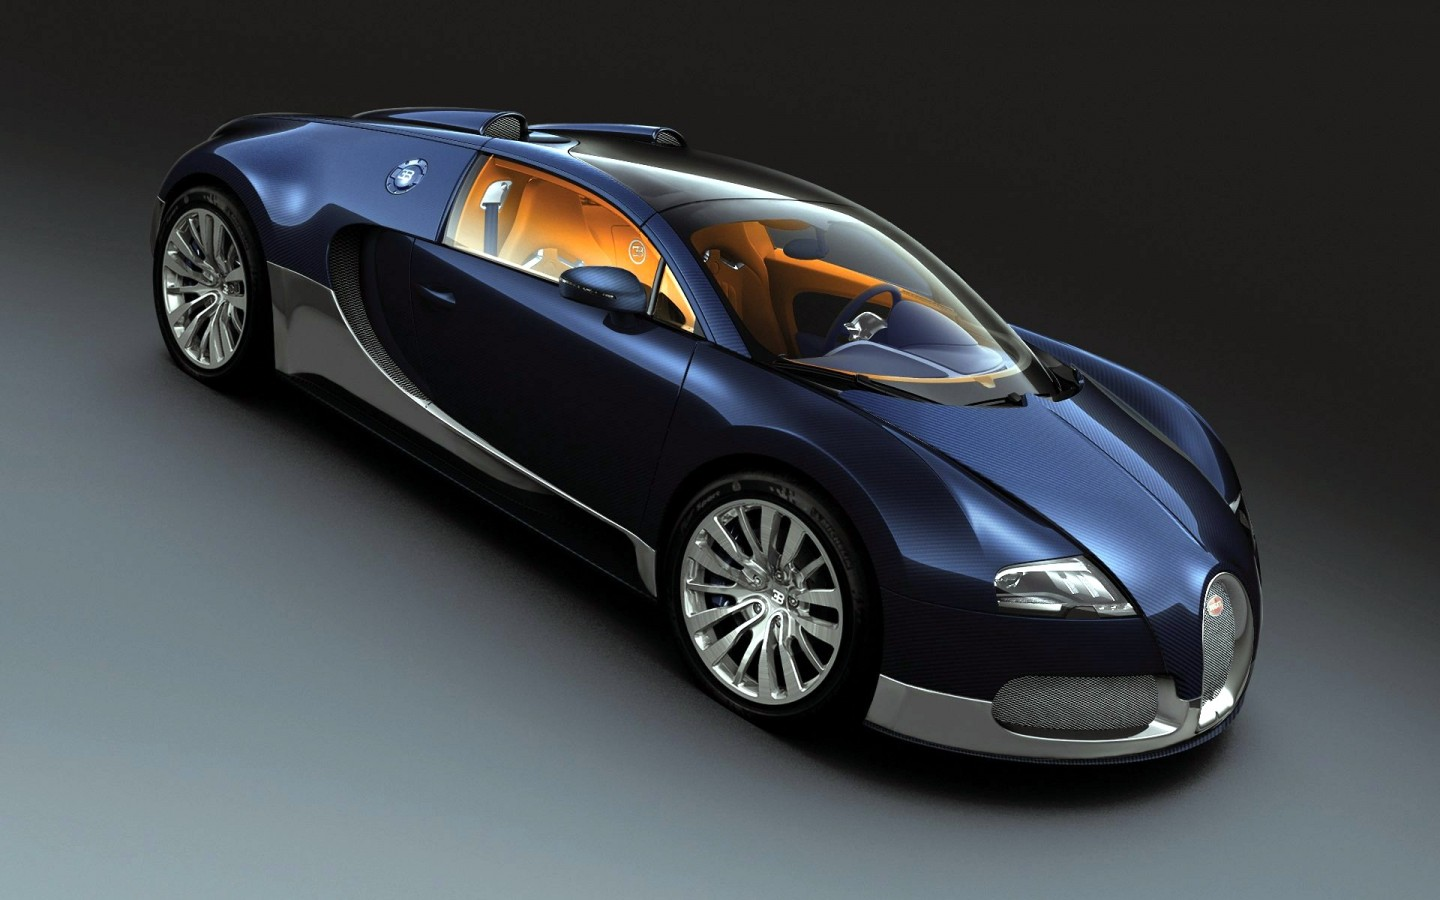 Wallpaper Bugatti Veyron Grand Sport: Bugatti Veyron Grand Sport 2011 Wallpaper